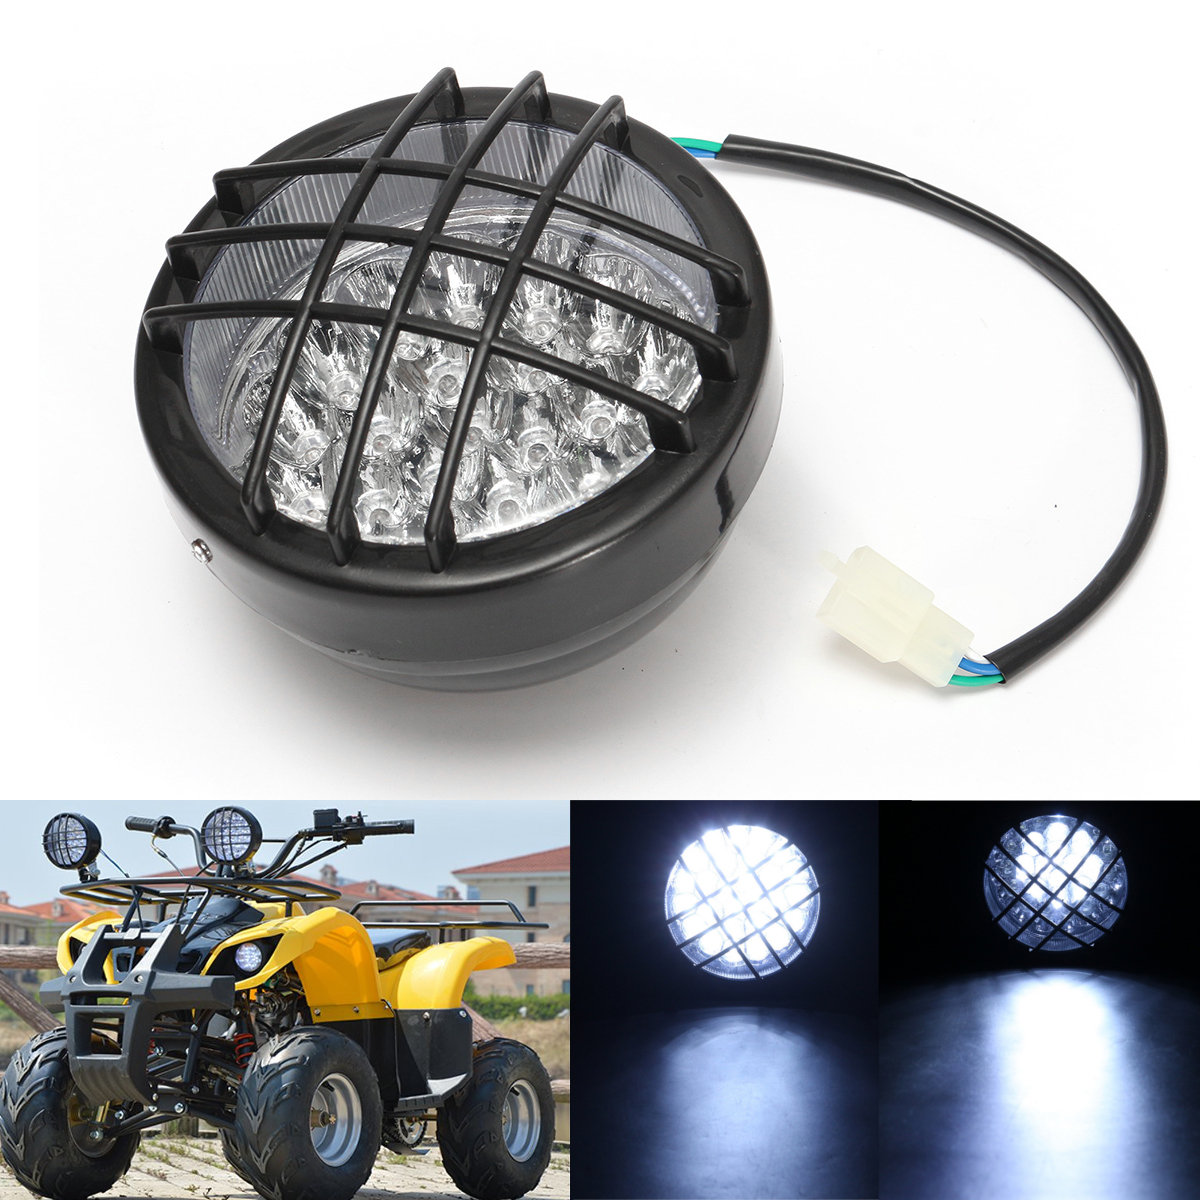 12V Front LED Headlight Lamp For ATV Quad 4 Wheeler Go Kart Roke